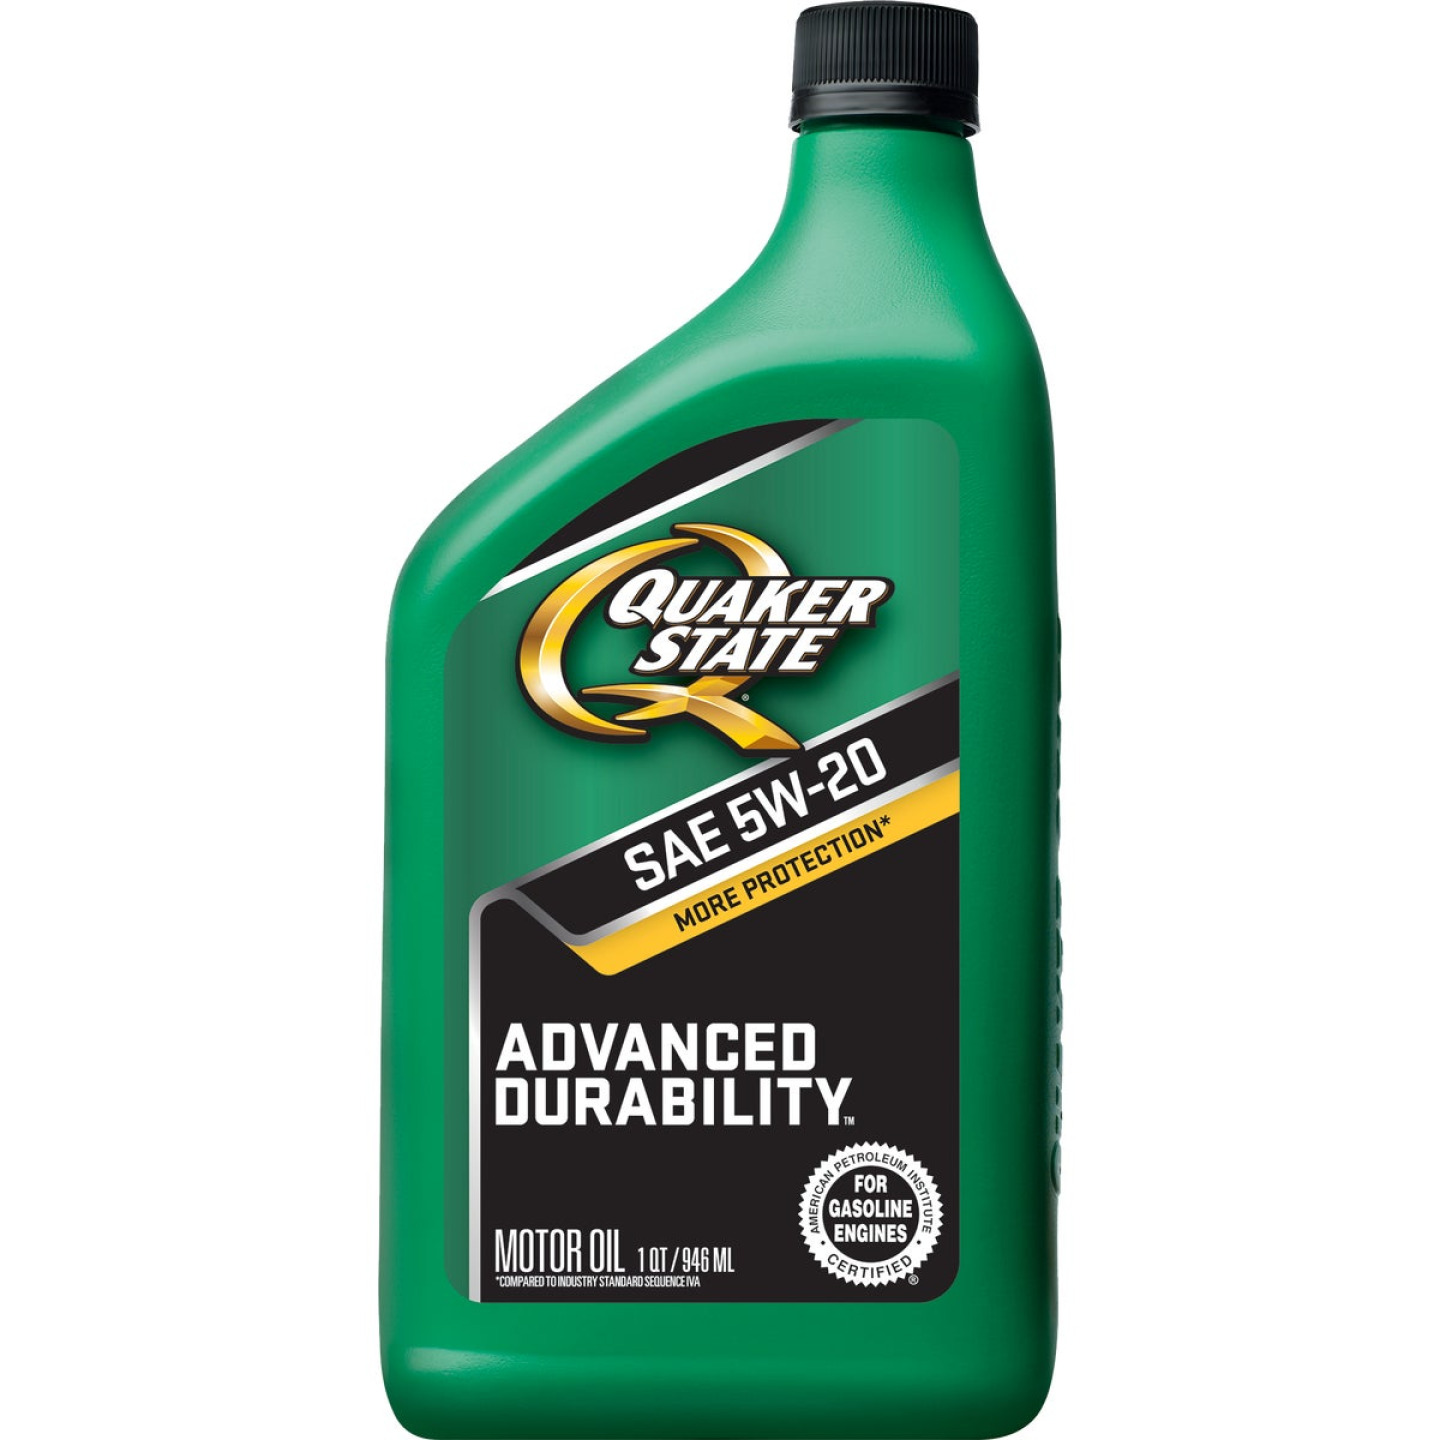 Quaker State Advanced Durability 5W20 Quart Motor Oil Image 1